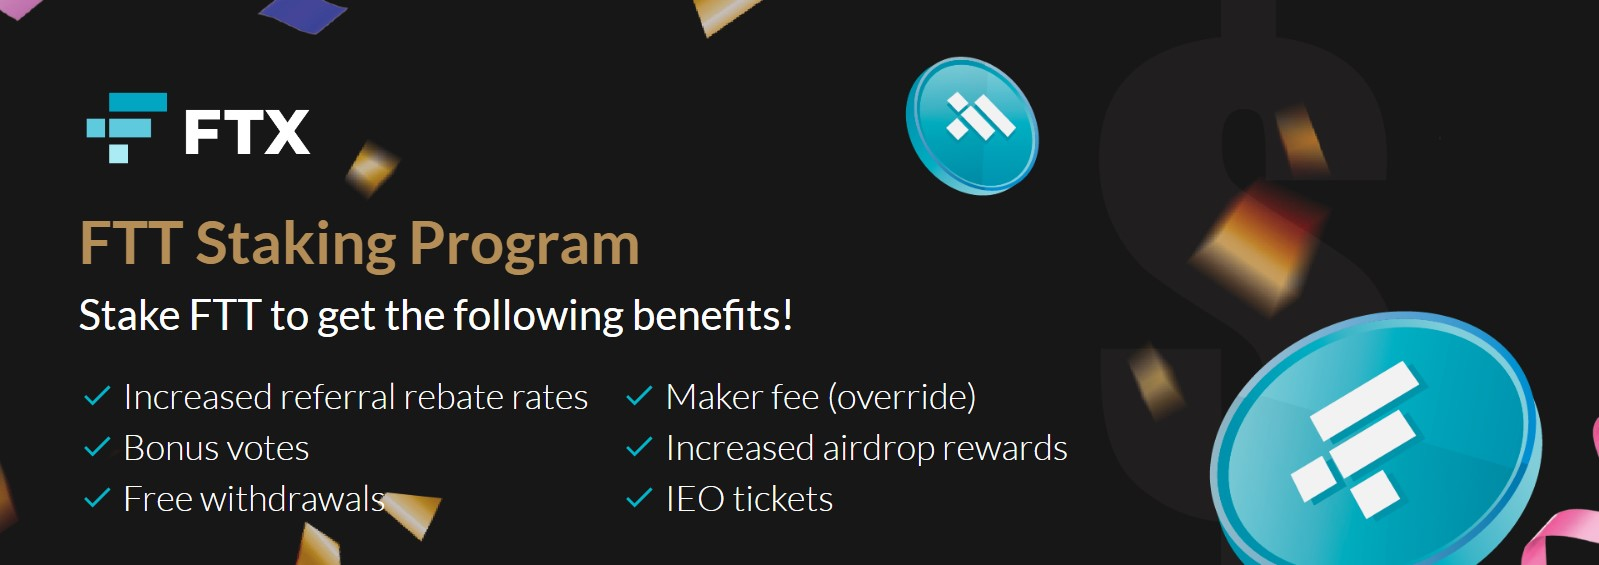 FTX staking program page